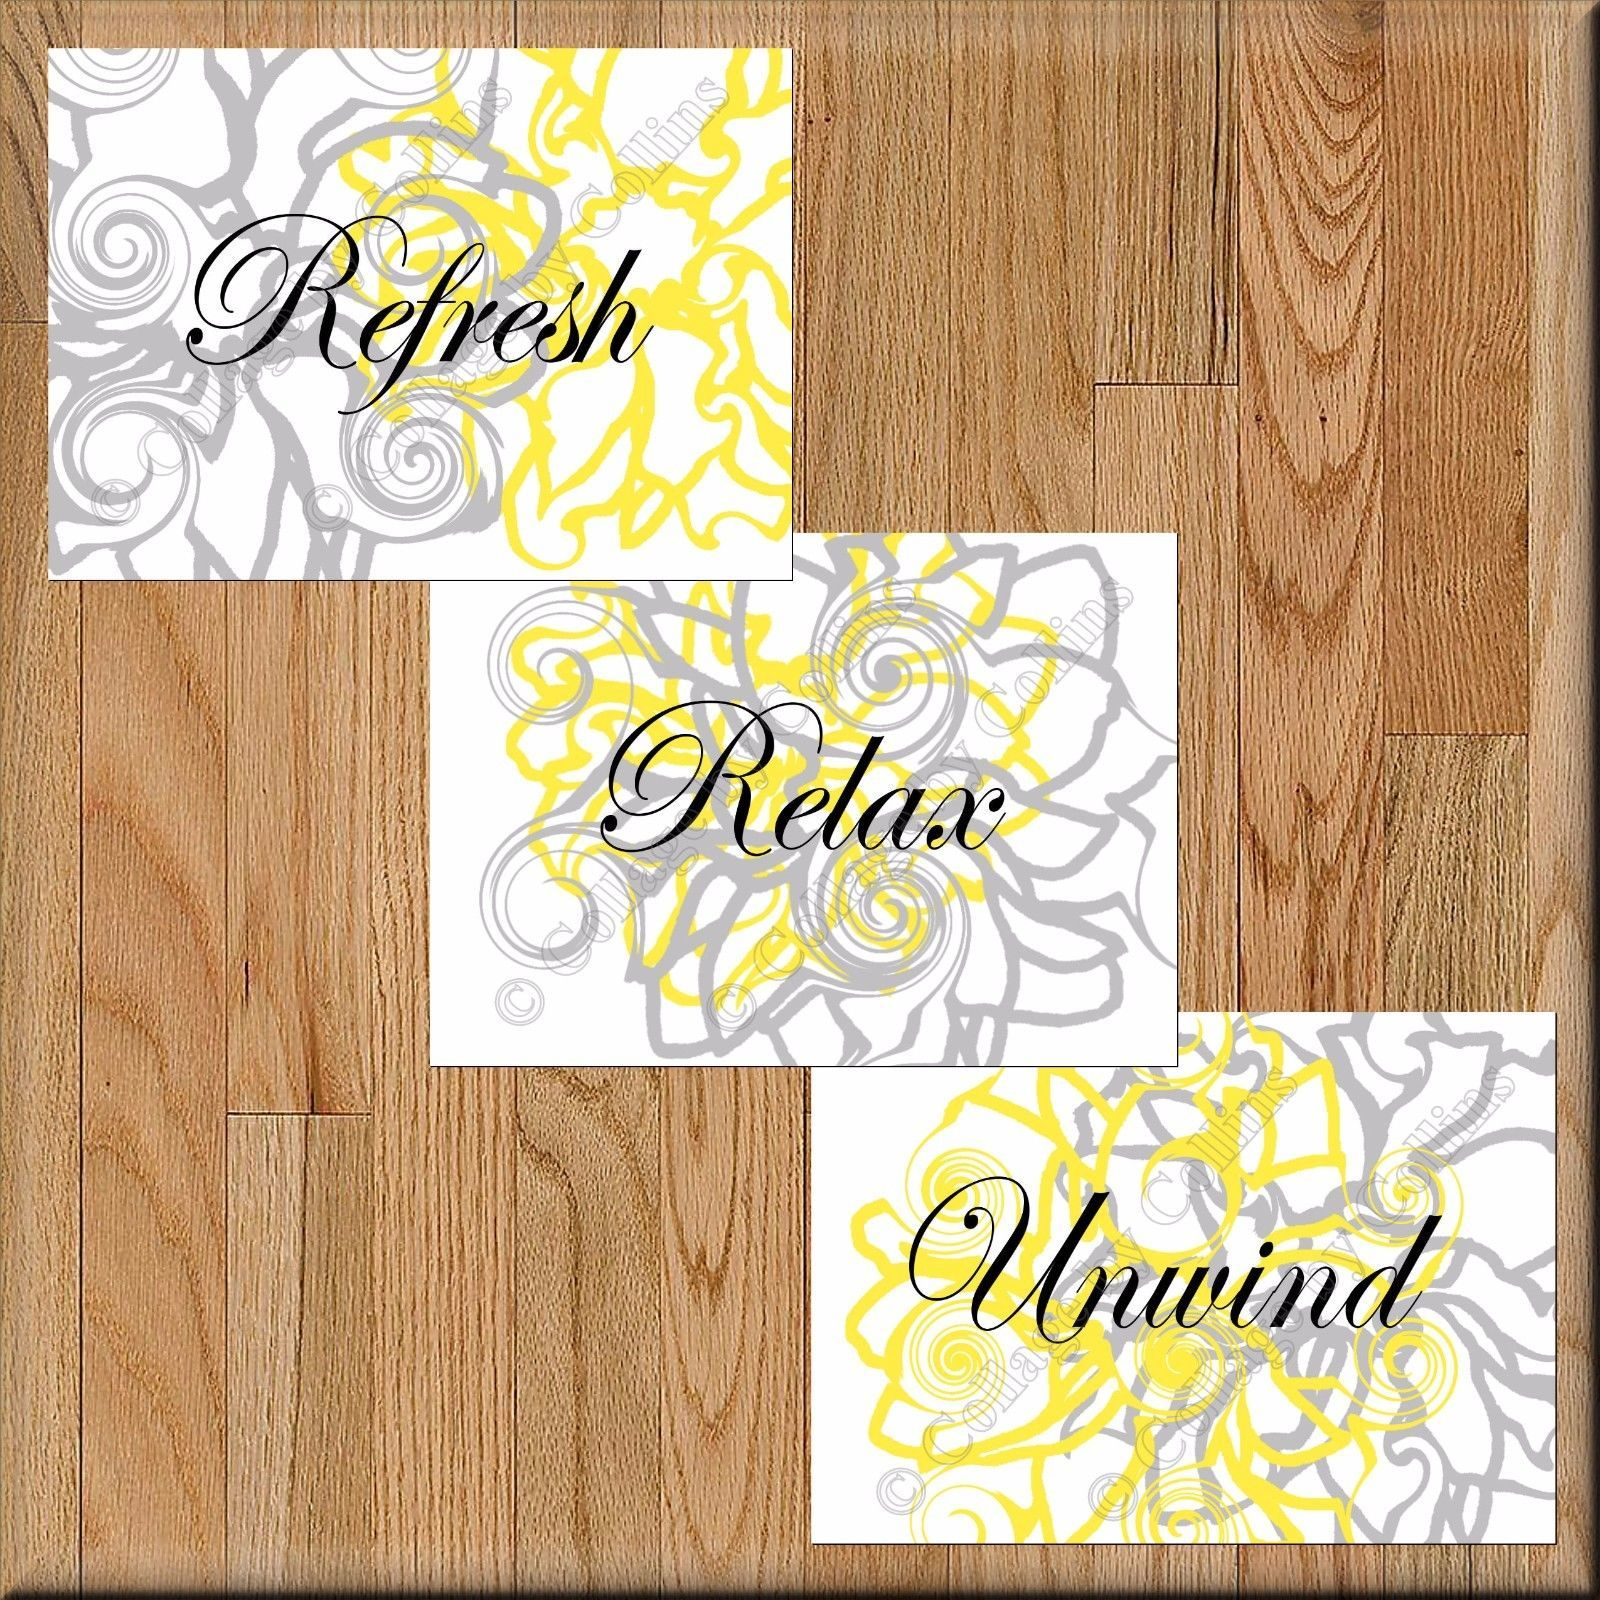 Primary image for Yellow Gray Bathroom Wall Art Pictures Prints Floral Decor Relax Refresh Unwind